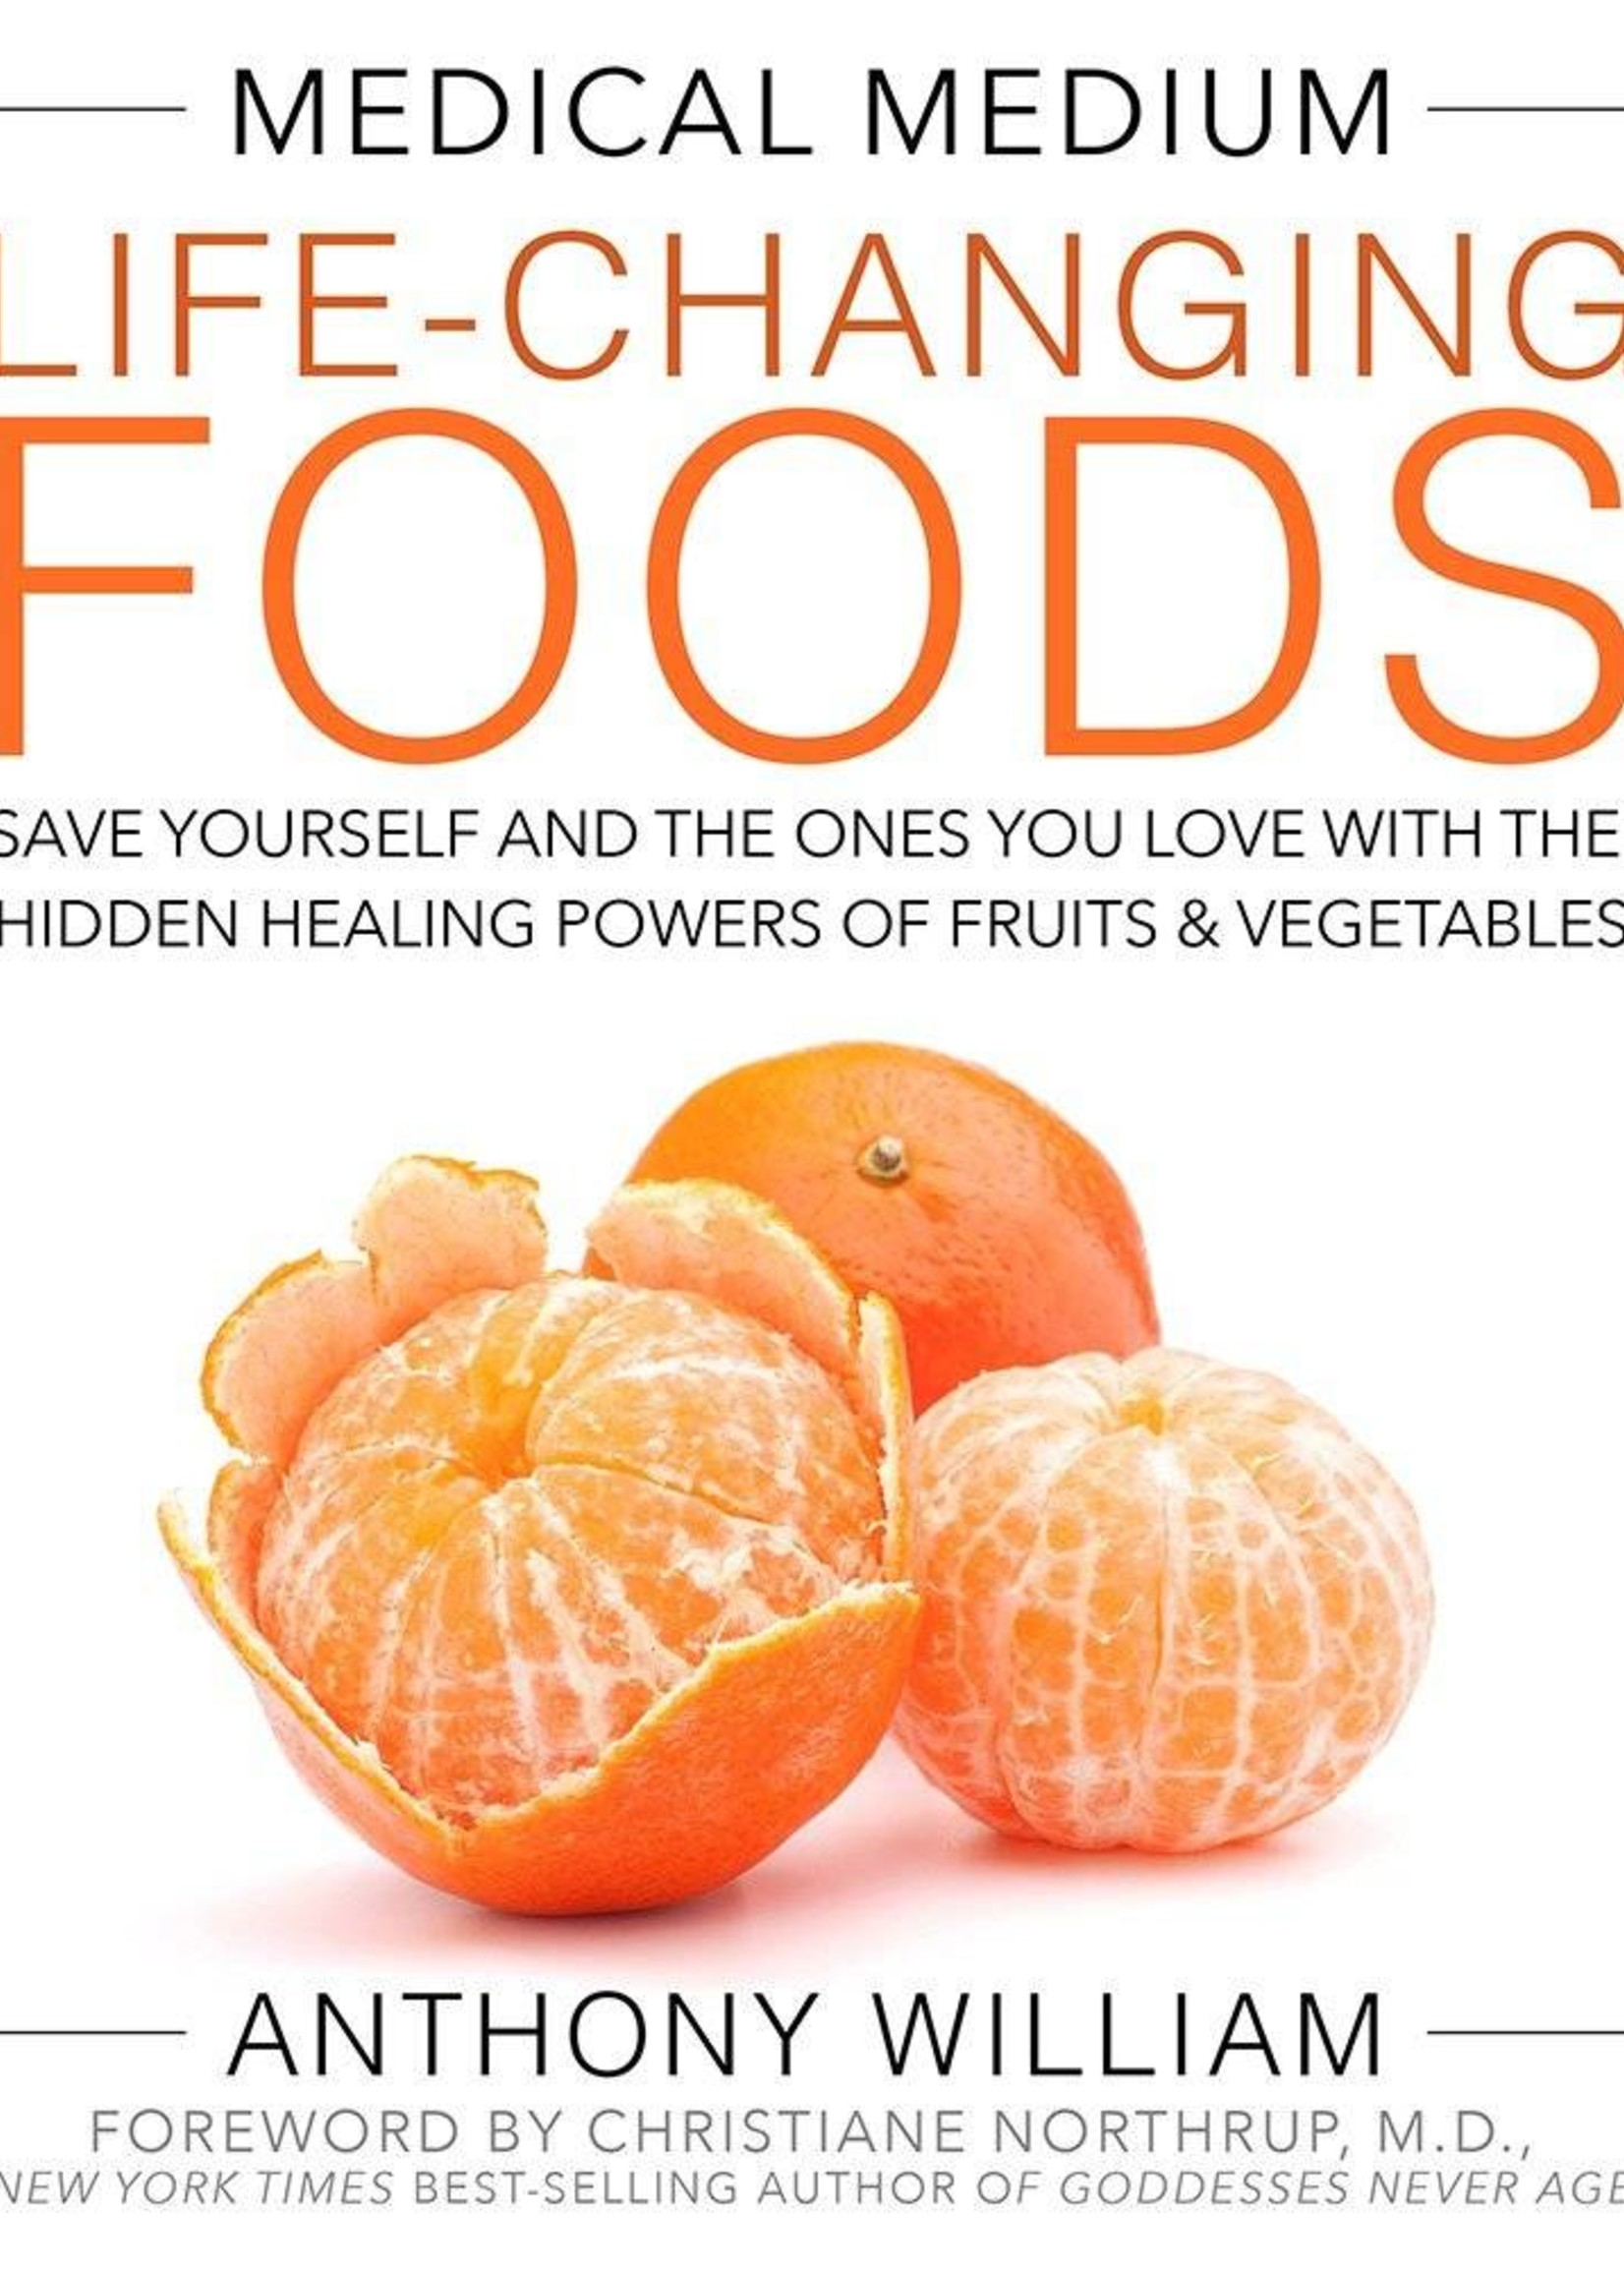 Medical Medium Life-Changing Foods | Save Yourself and the Ones You Love with the Hidden Healing Powers of Fruits & Vegetables